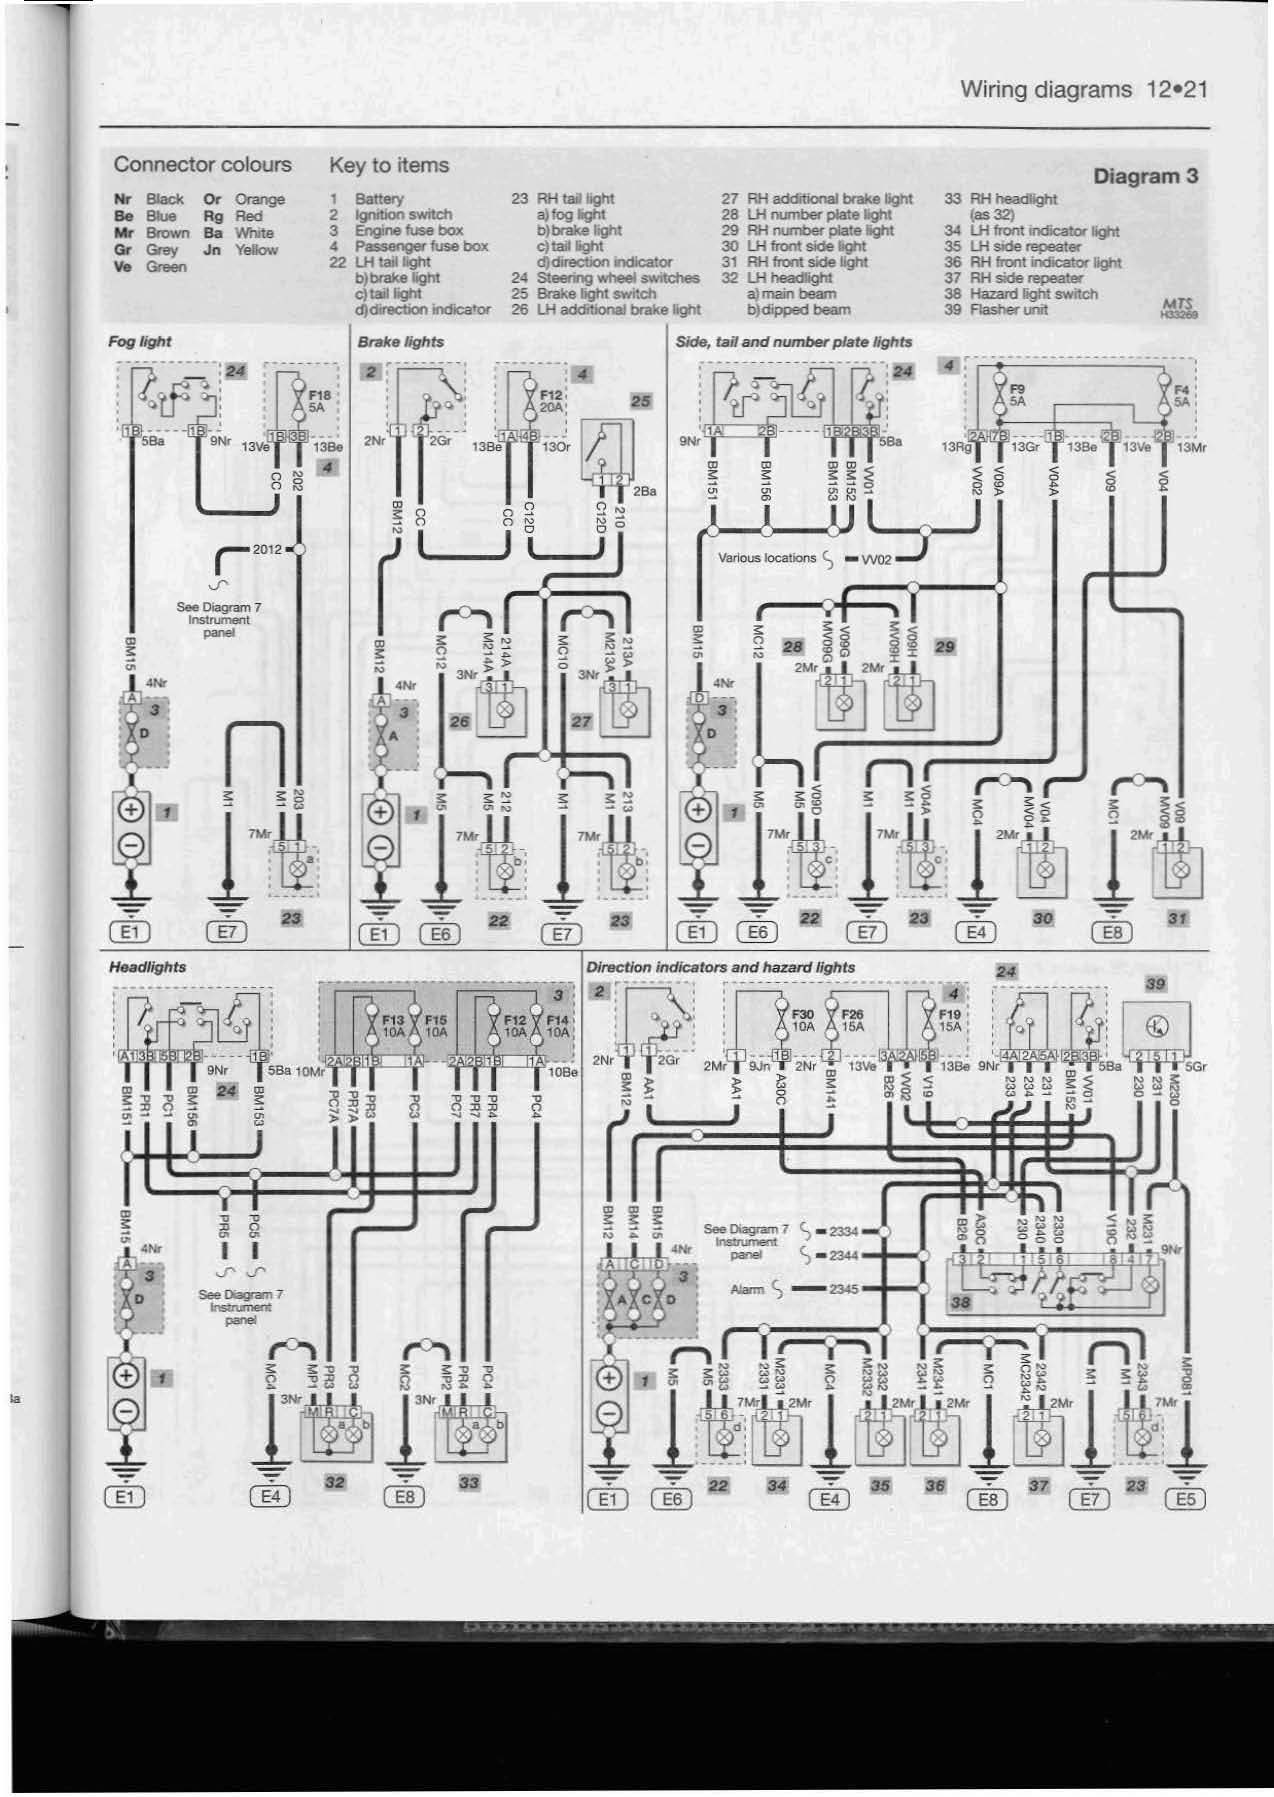 Manual Electrico De Peugeot Partner Citroen Berlingo En Taringa Bsi Wiring Diagram